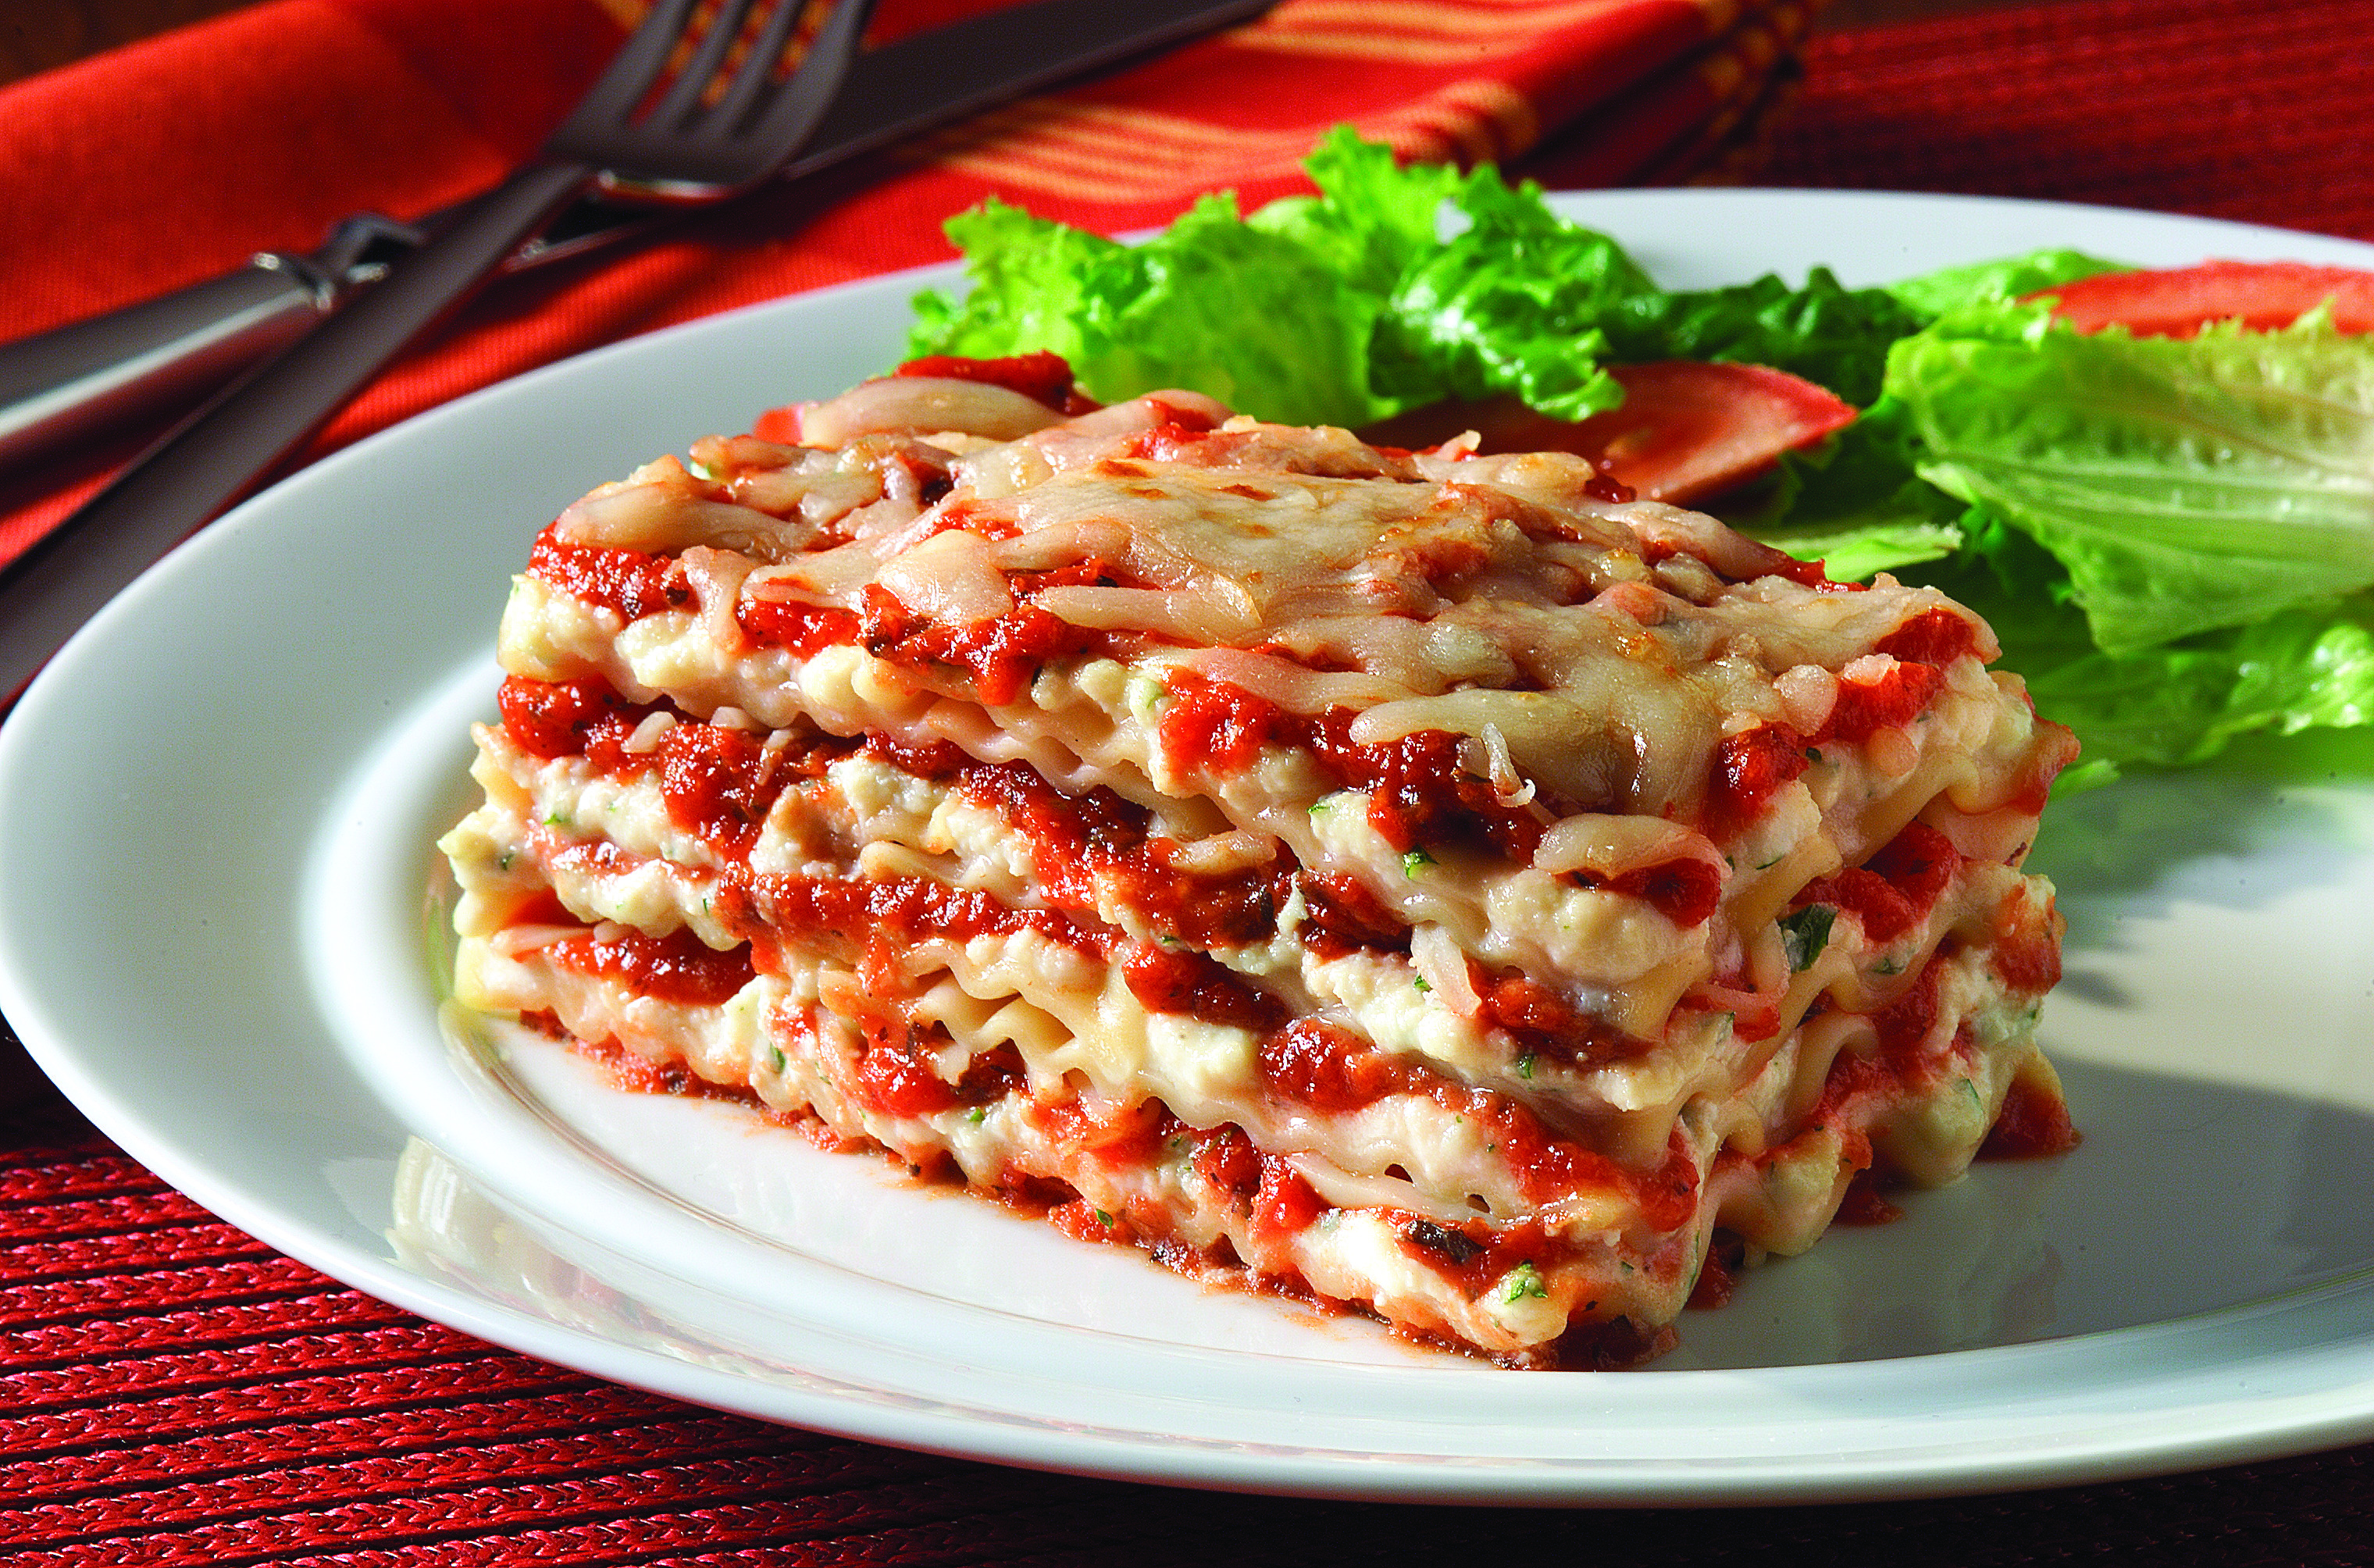 Classic Cheese Lasagna - My Food and Family